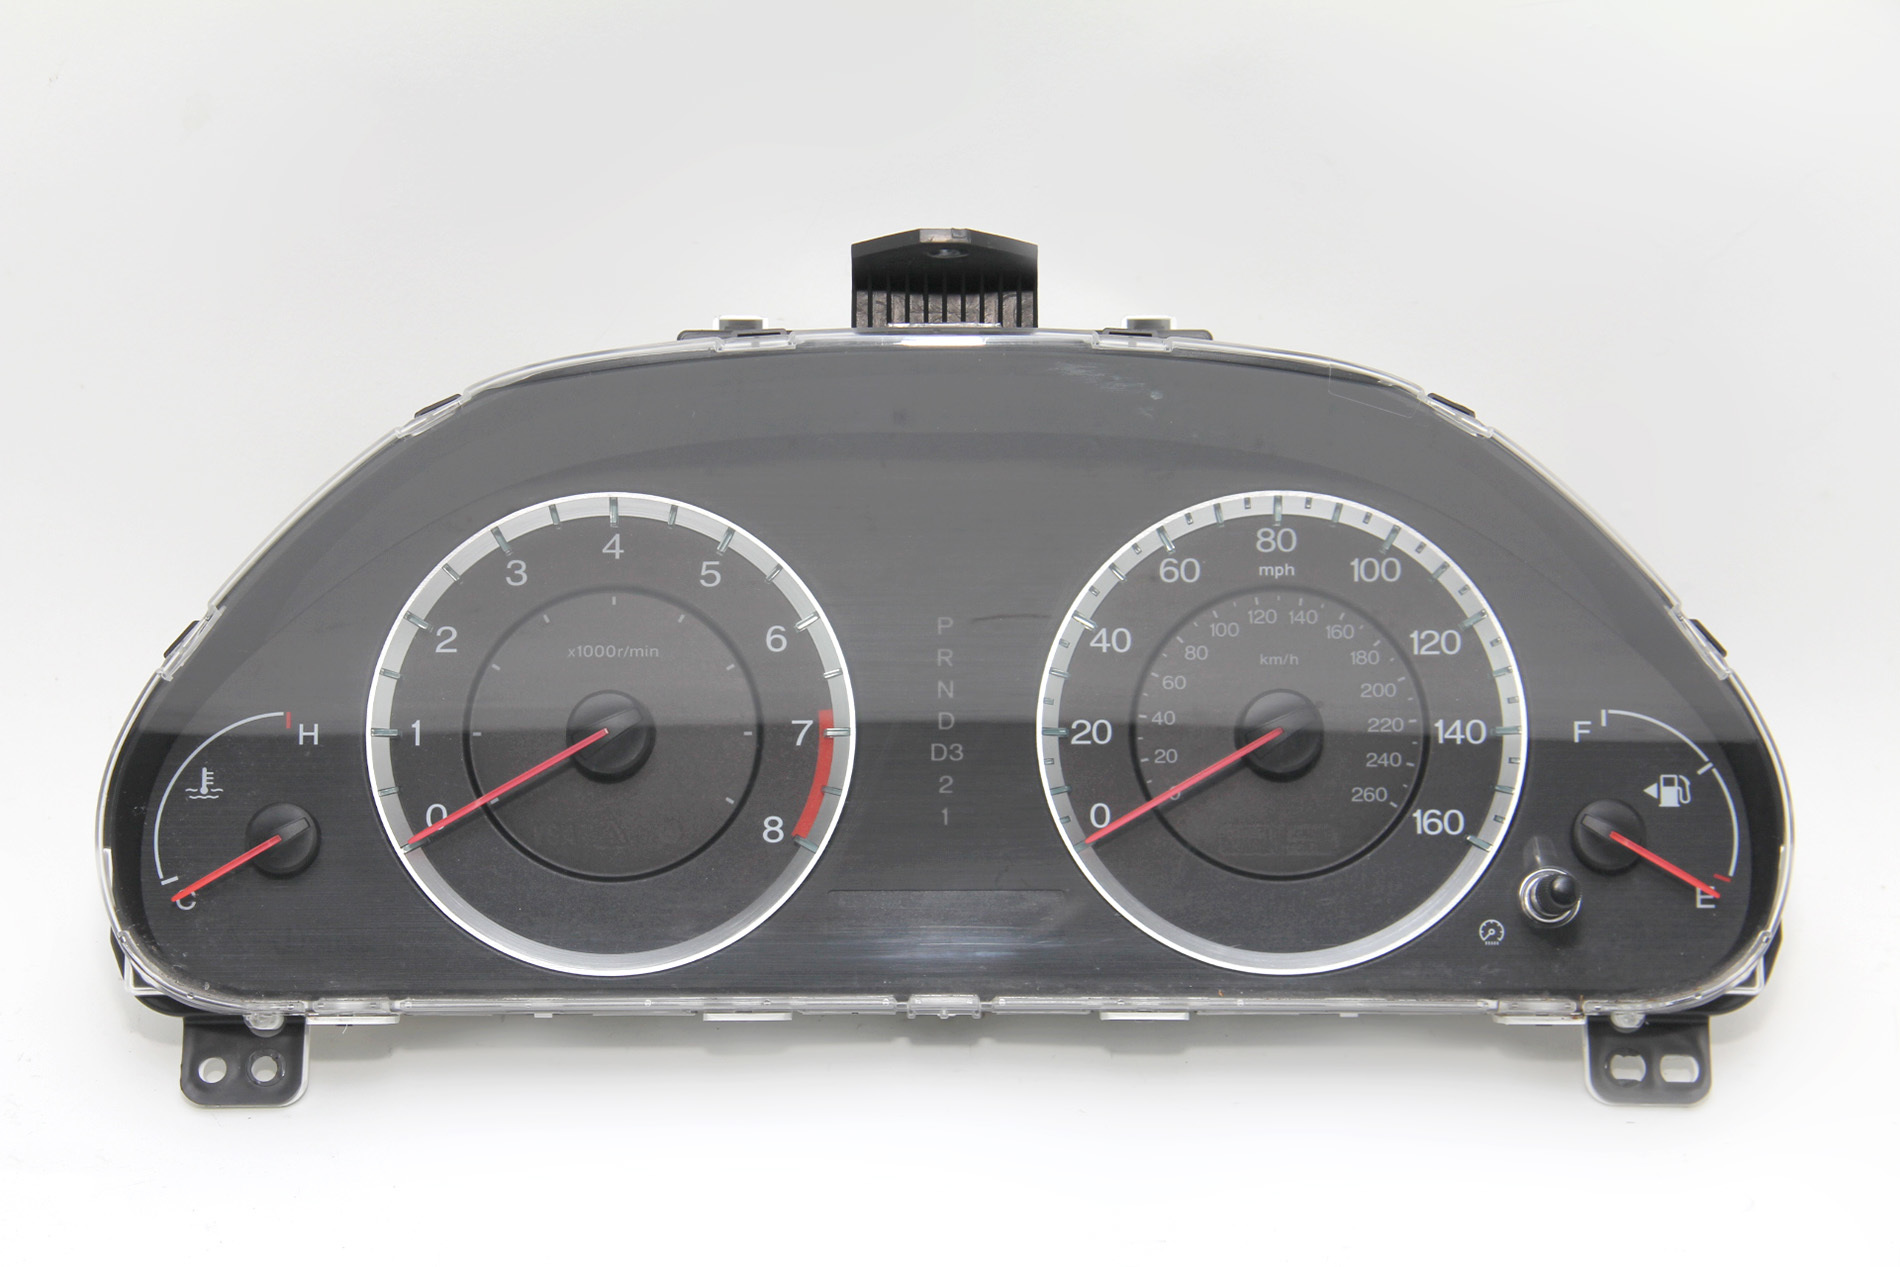 Honda Accord Coupe 08-12 Speedometer Cluster Meter Panel 162,146 Mi 78100-TE0-A22